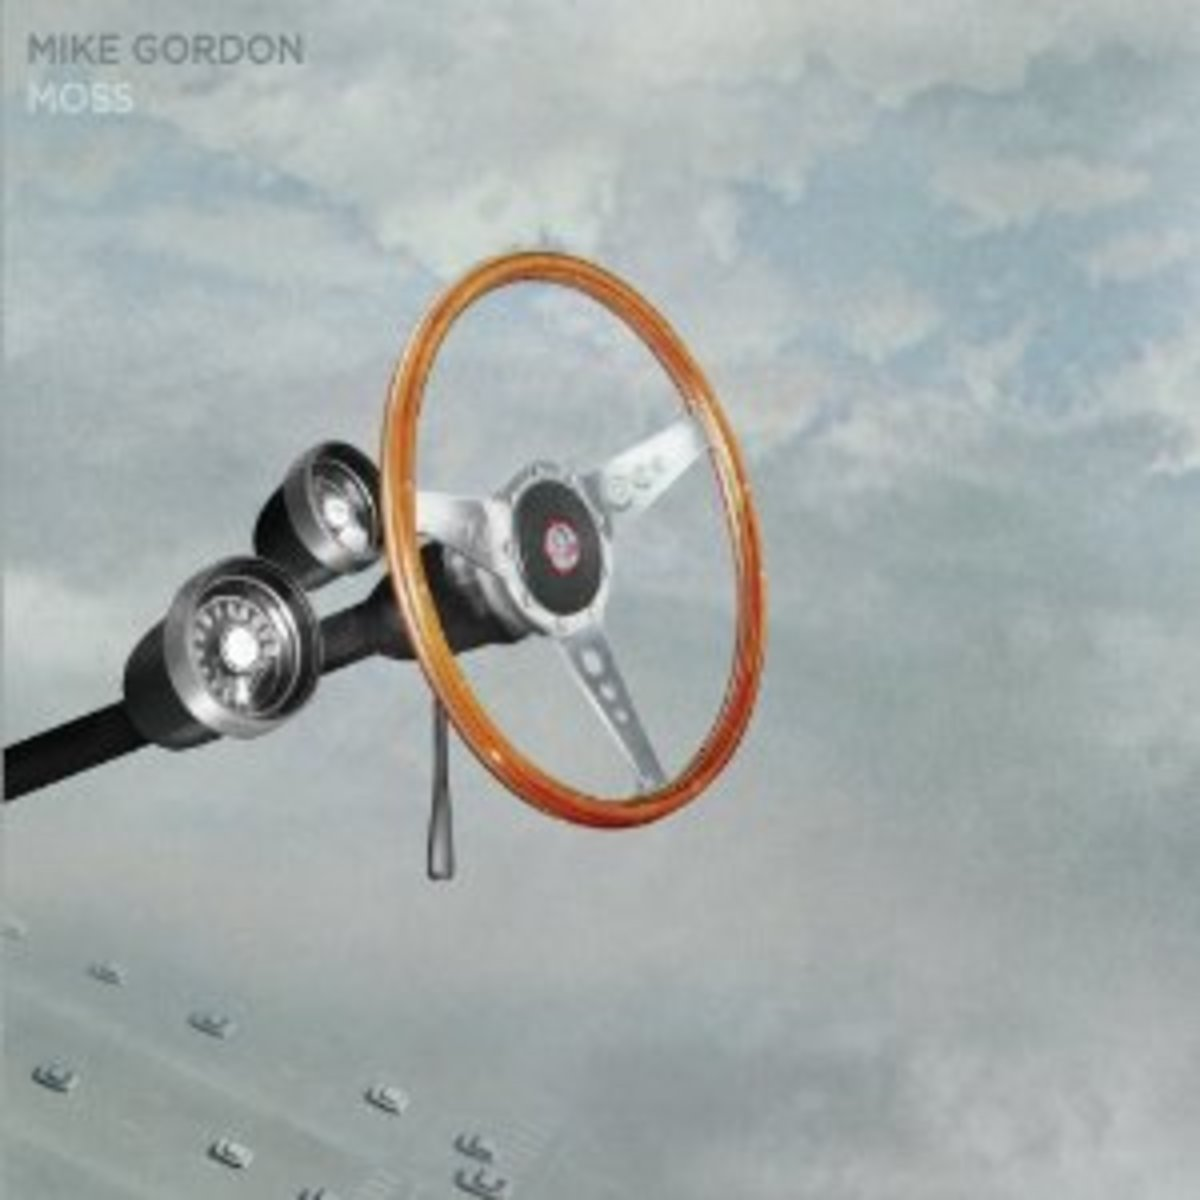 """Mike Gordon's latest solo effort is """"Moss"""" on Rounder Records."""